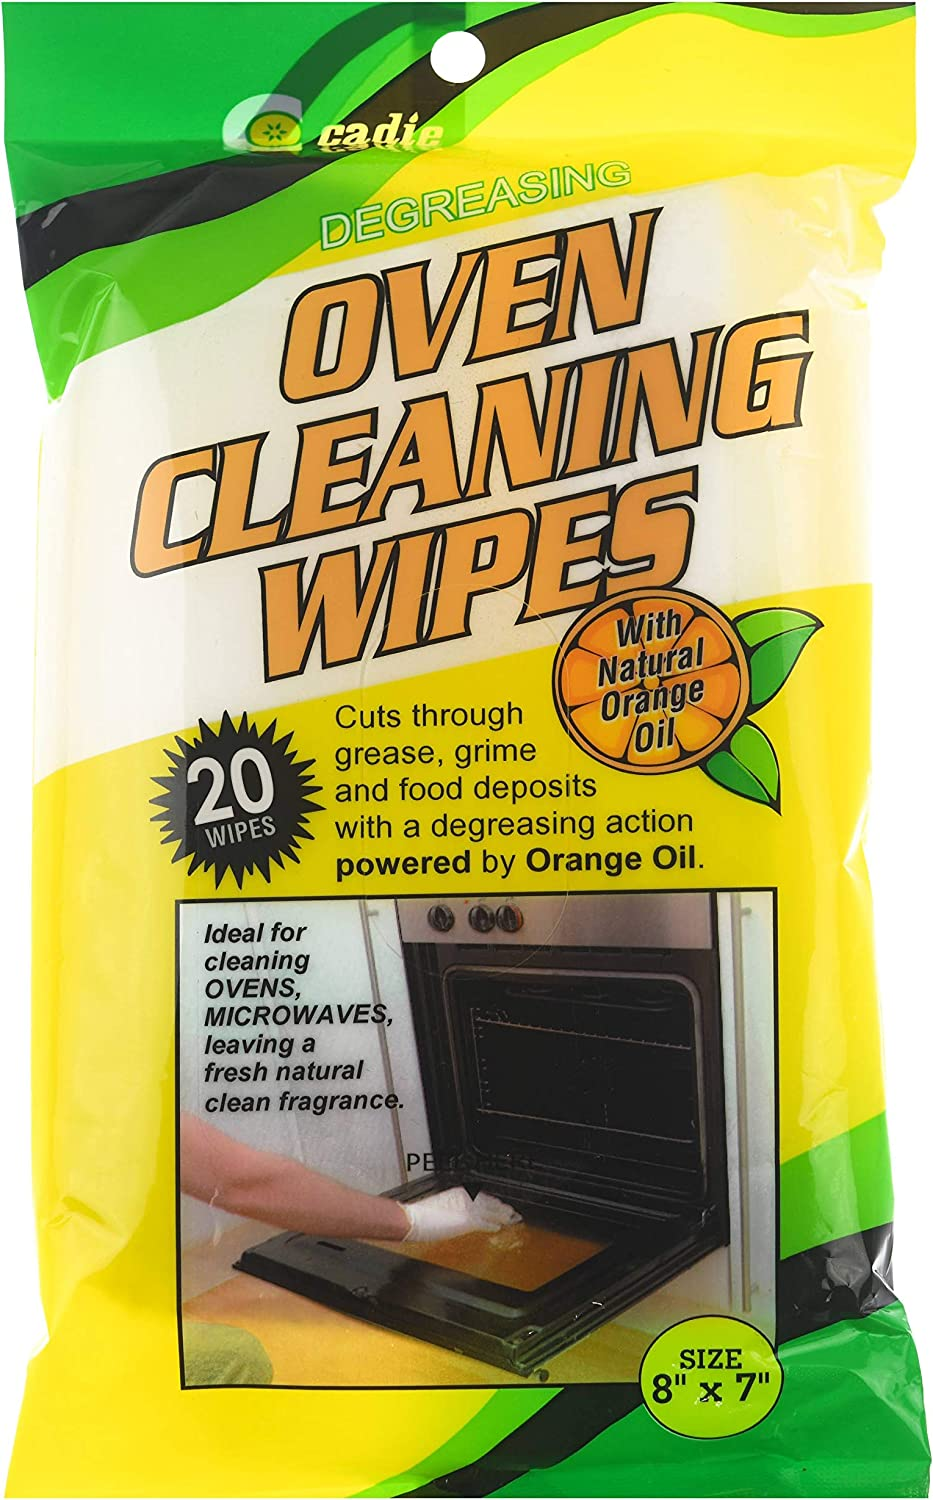 Oven and Microwave Cleaning Wipes – Effectively Removes all Grease, Grime and Food Stains on Kitchen Gadget – Leaves Fresh Natural Orange Scent | Degreasing Wipes 8x7 Inches (1 Pack 20 Wipes) By Cadie